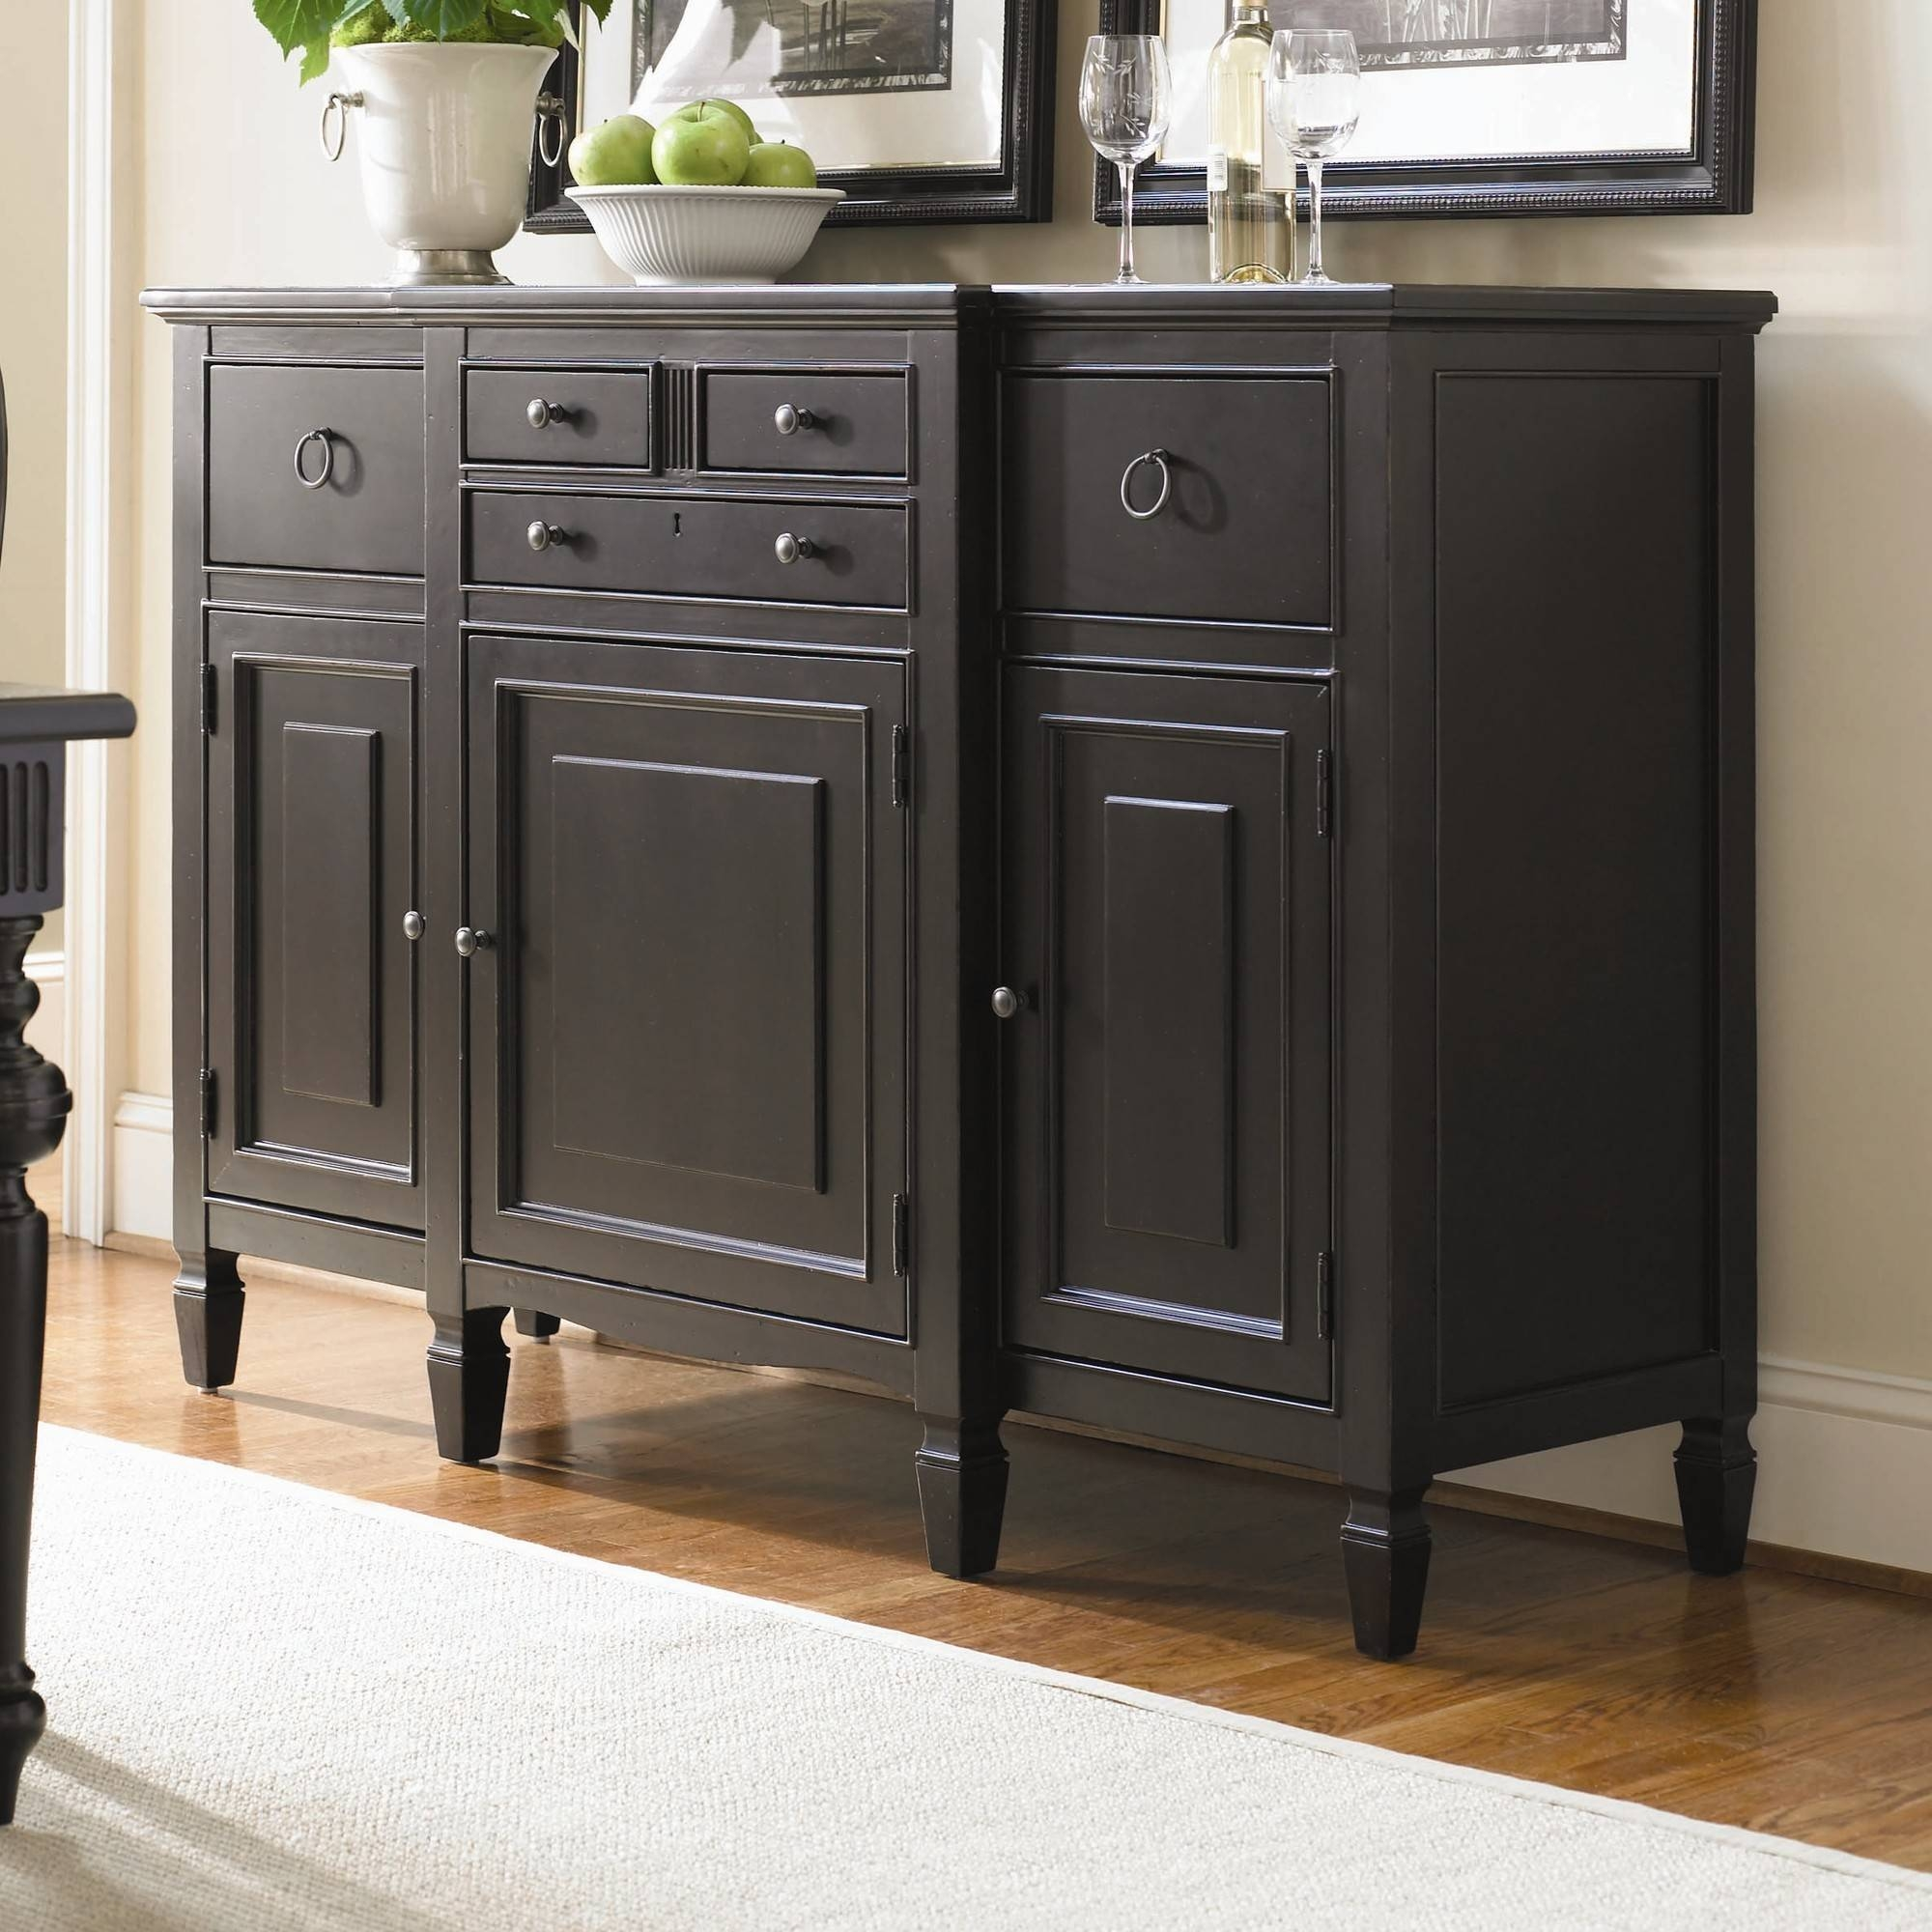 Dining Room Sideboards And Buffets: 15 Collection Of Small Dining Room Sideboards